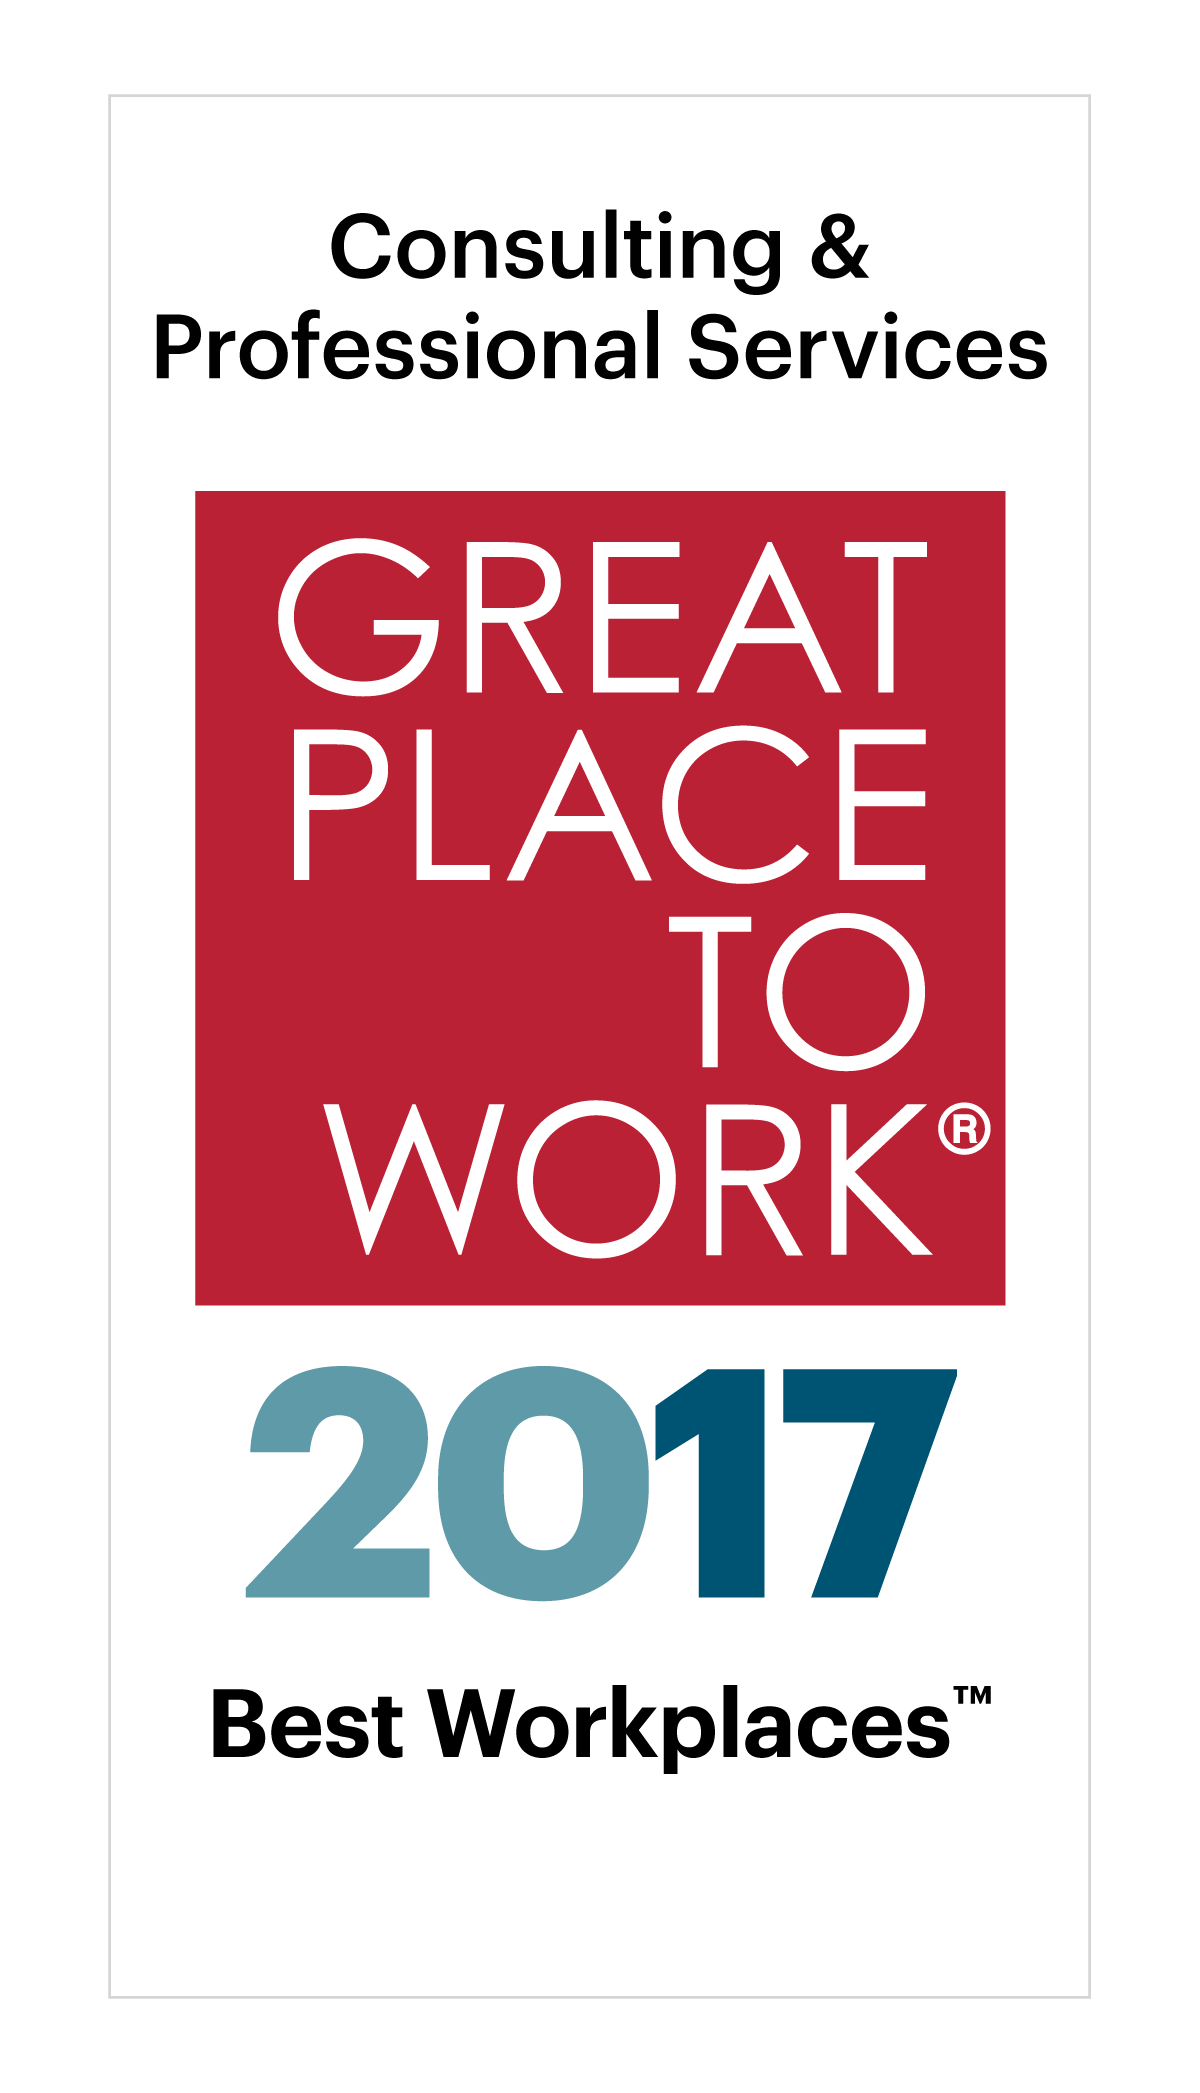 best workplaces in consulting professional services 2017